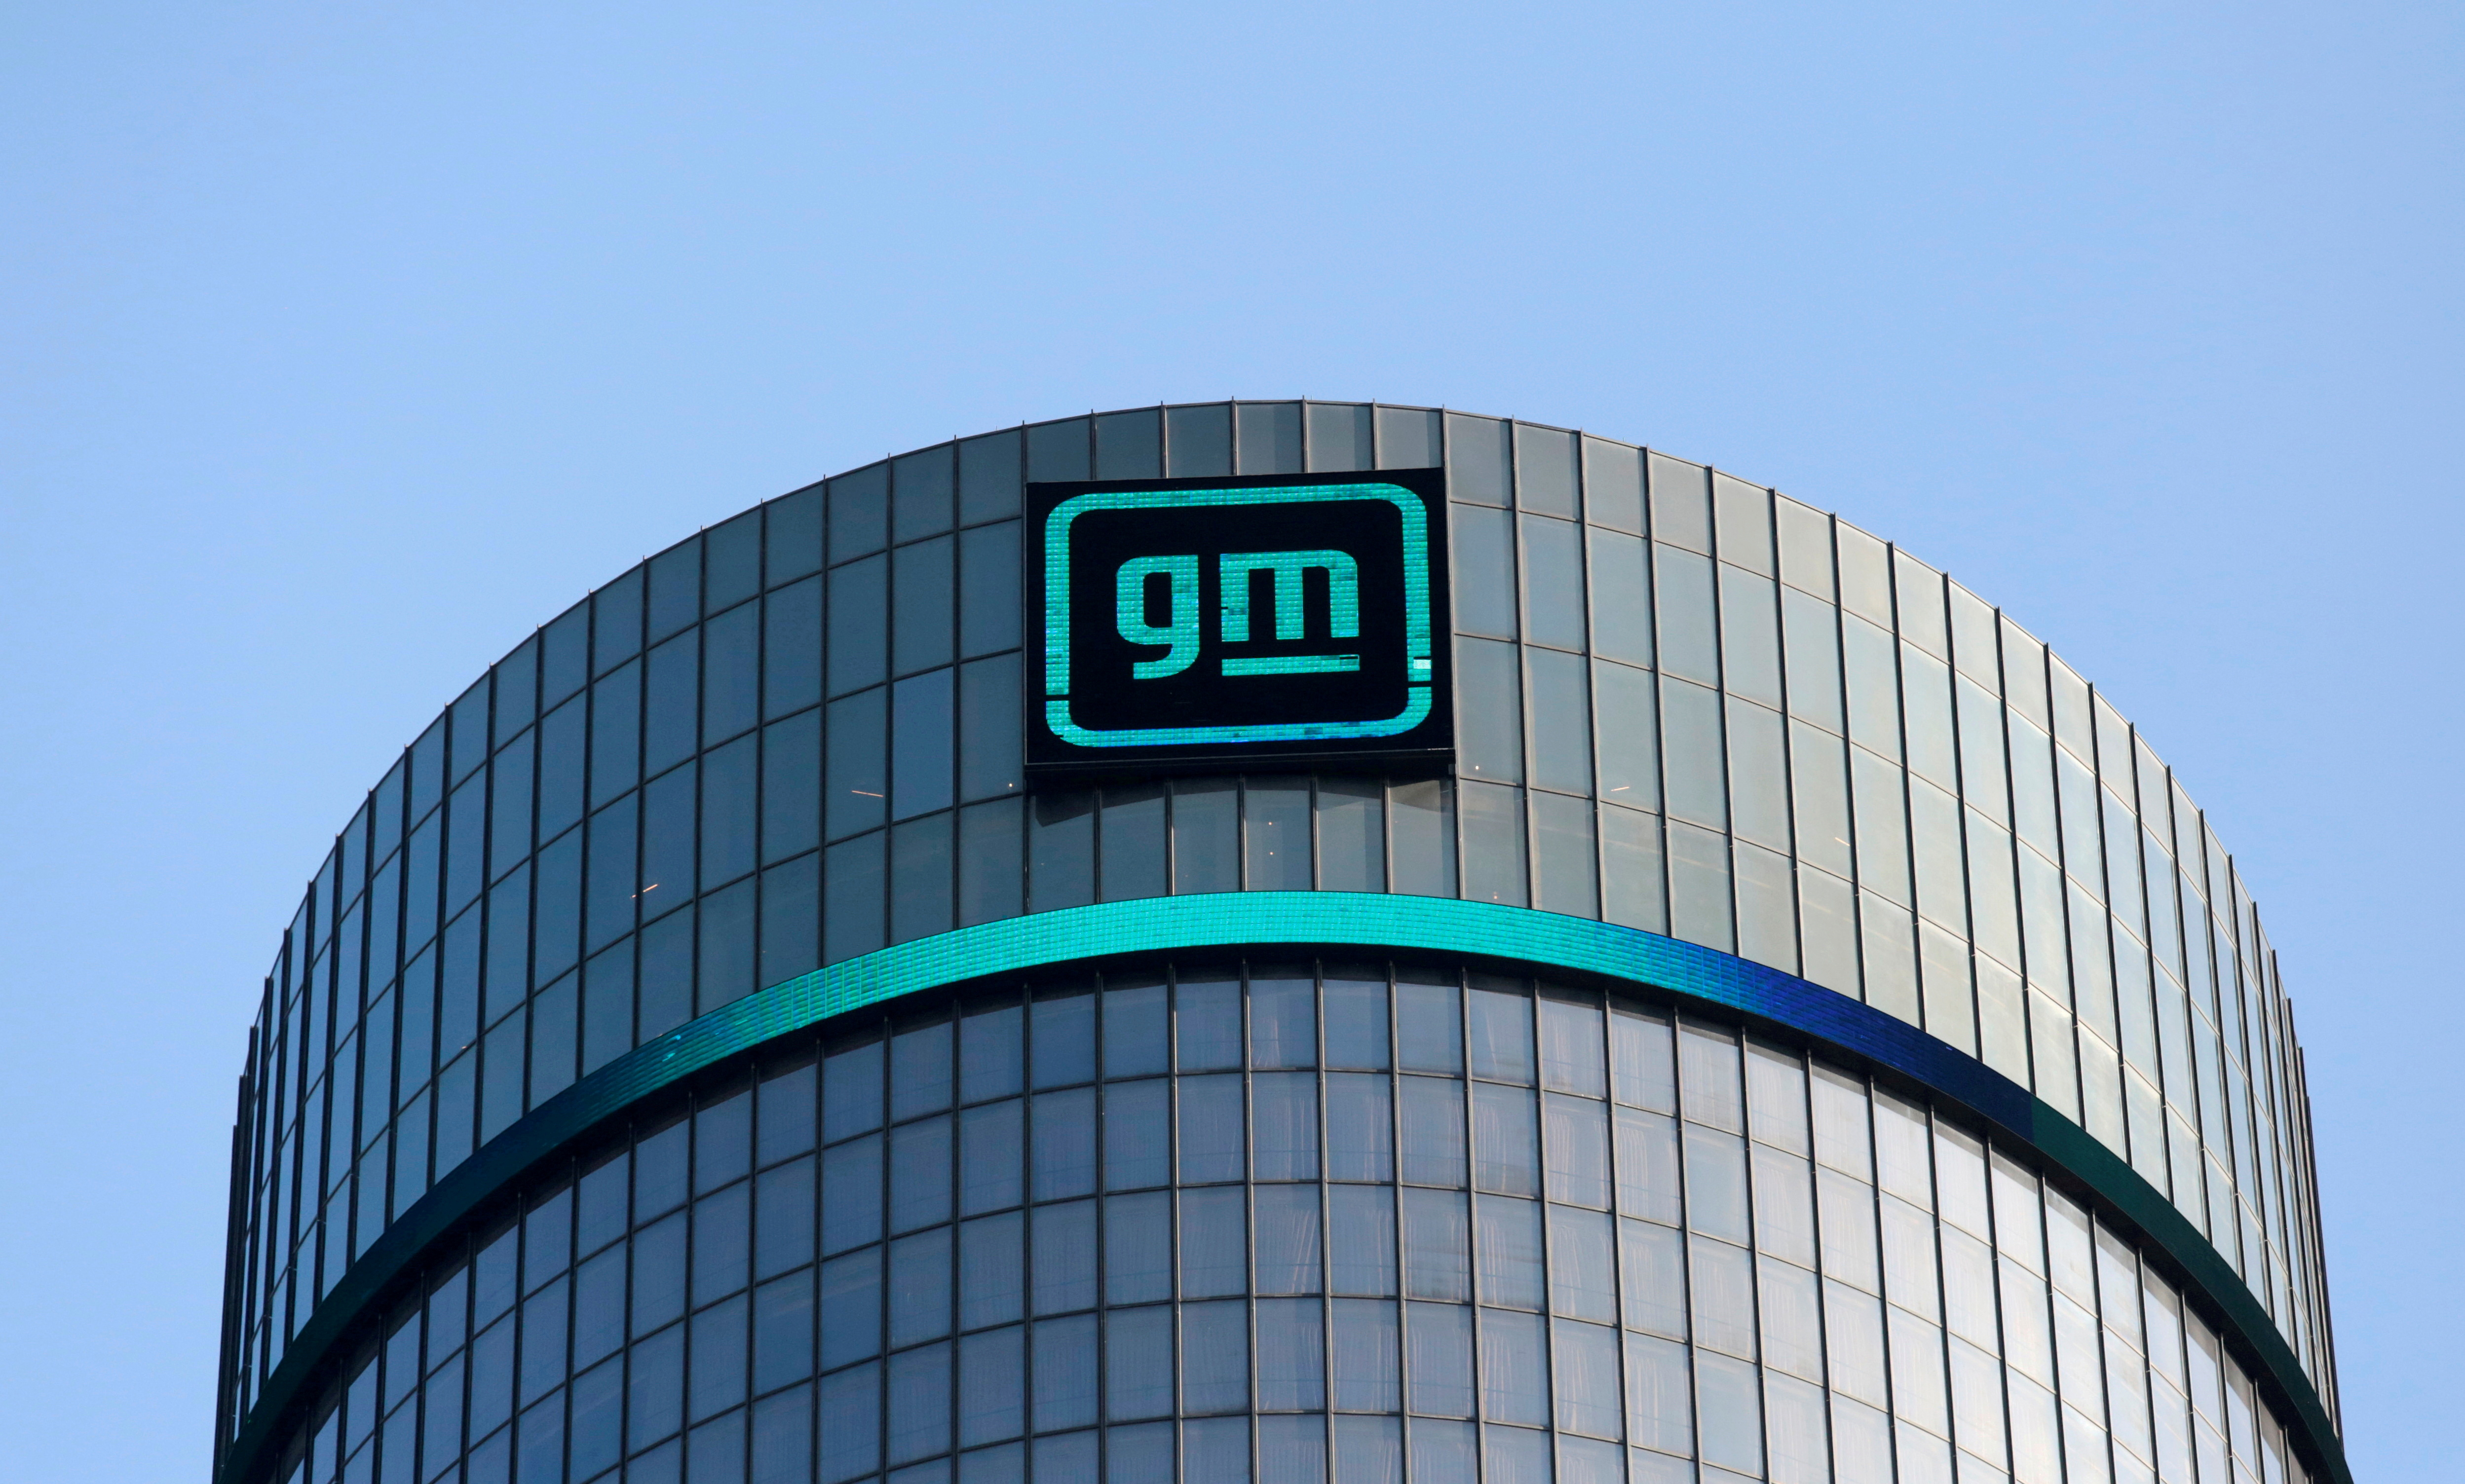 The new GM logo is seen on the facade of the General Motors headquarters in Detroit, Michigan, U.S., March 16, 2021. REUTERS/Rebecca Cook//File Photo